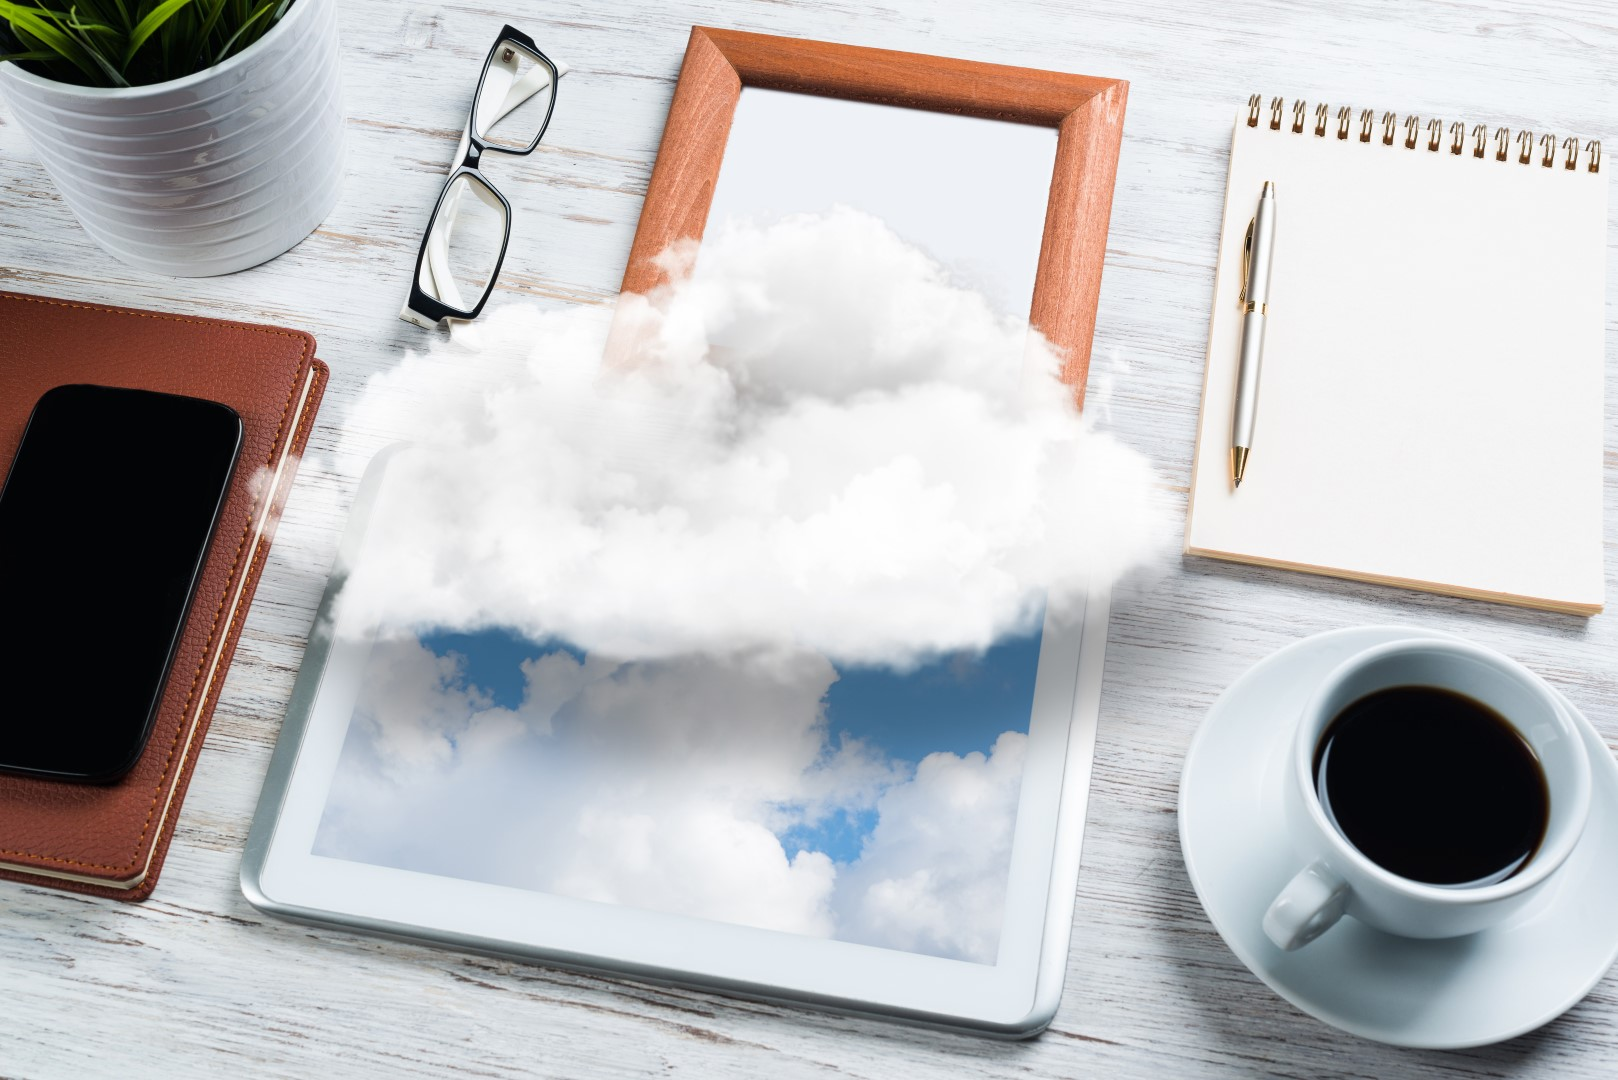 It's all systems go for the Digital Marketplace on G-Cloud, government confirms